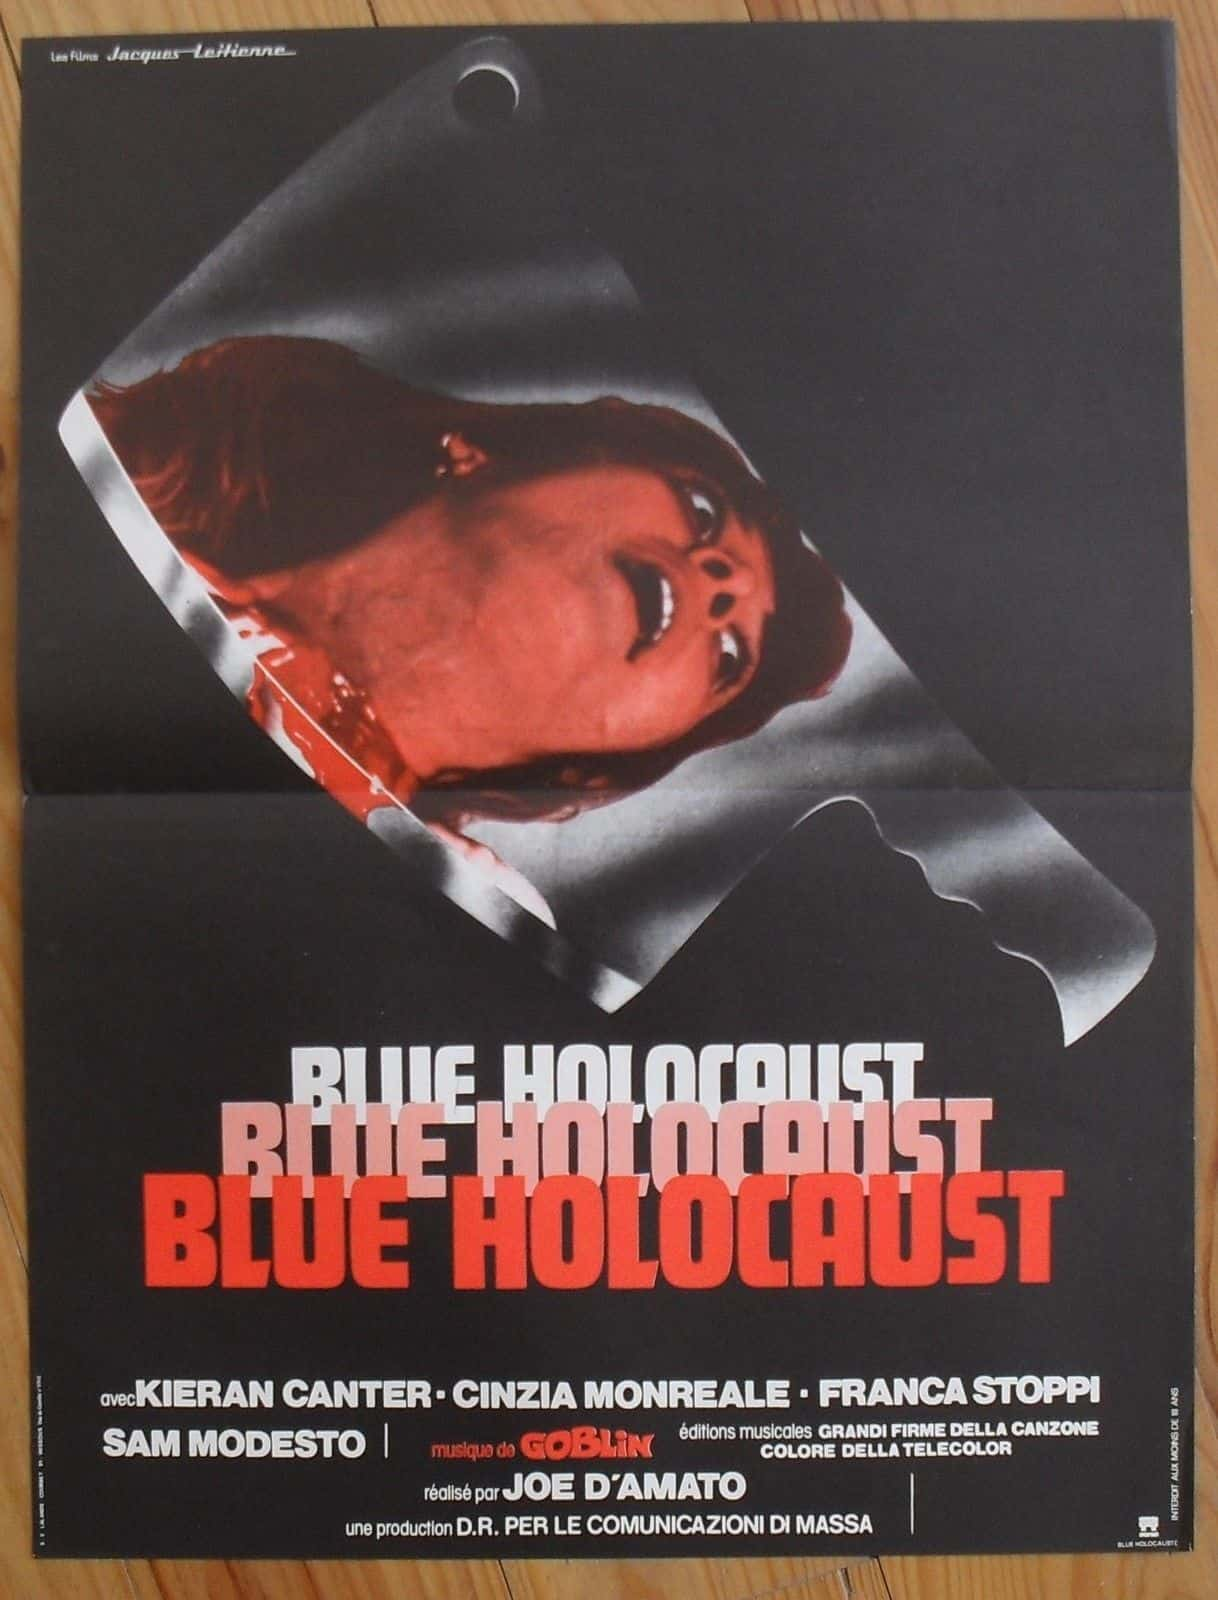 Movie Posters We Love: Blue Holocaust (1979)